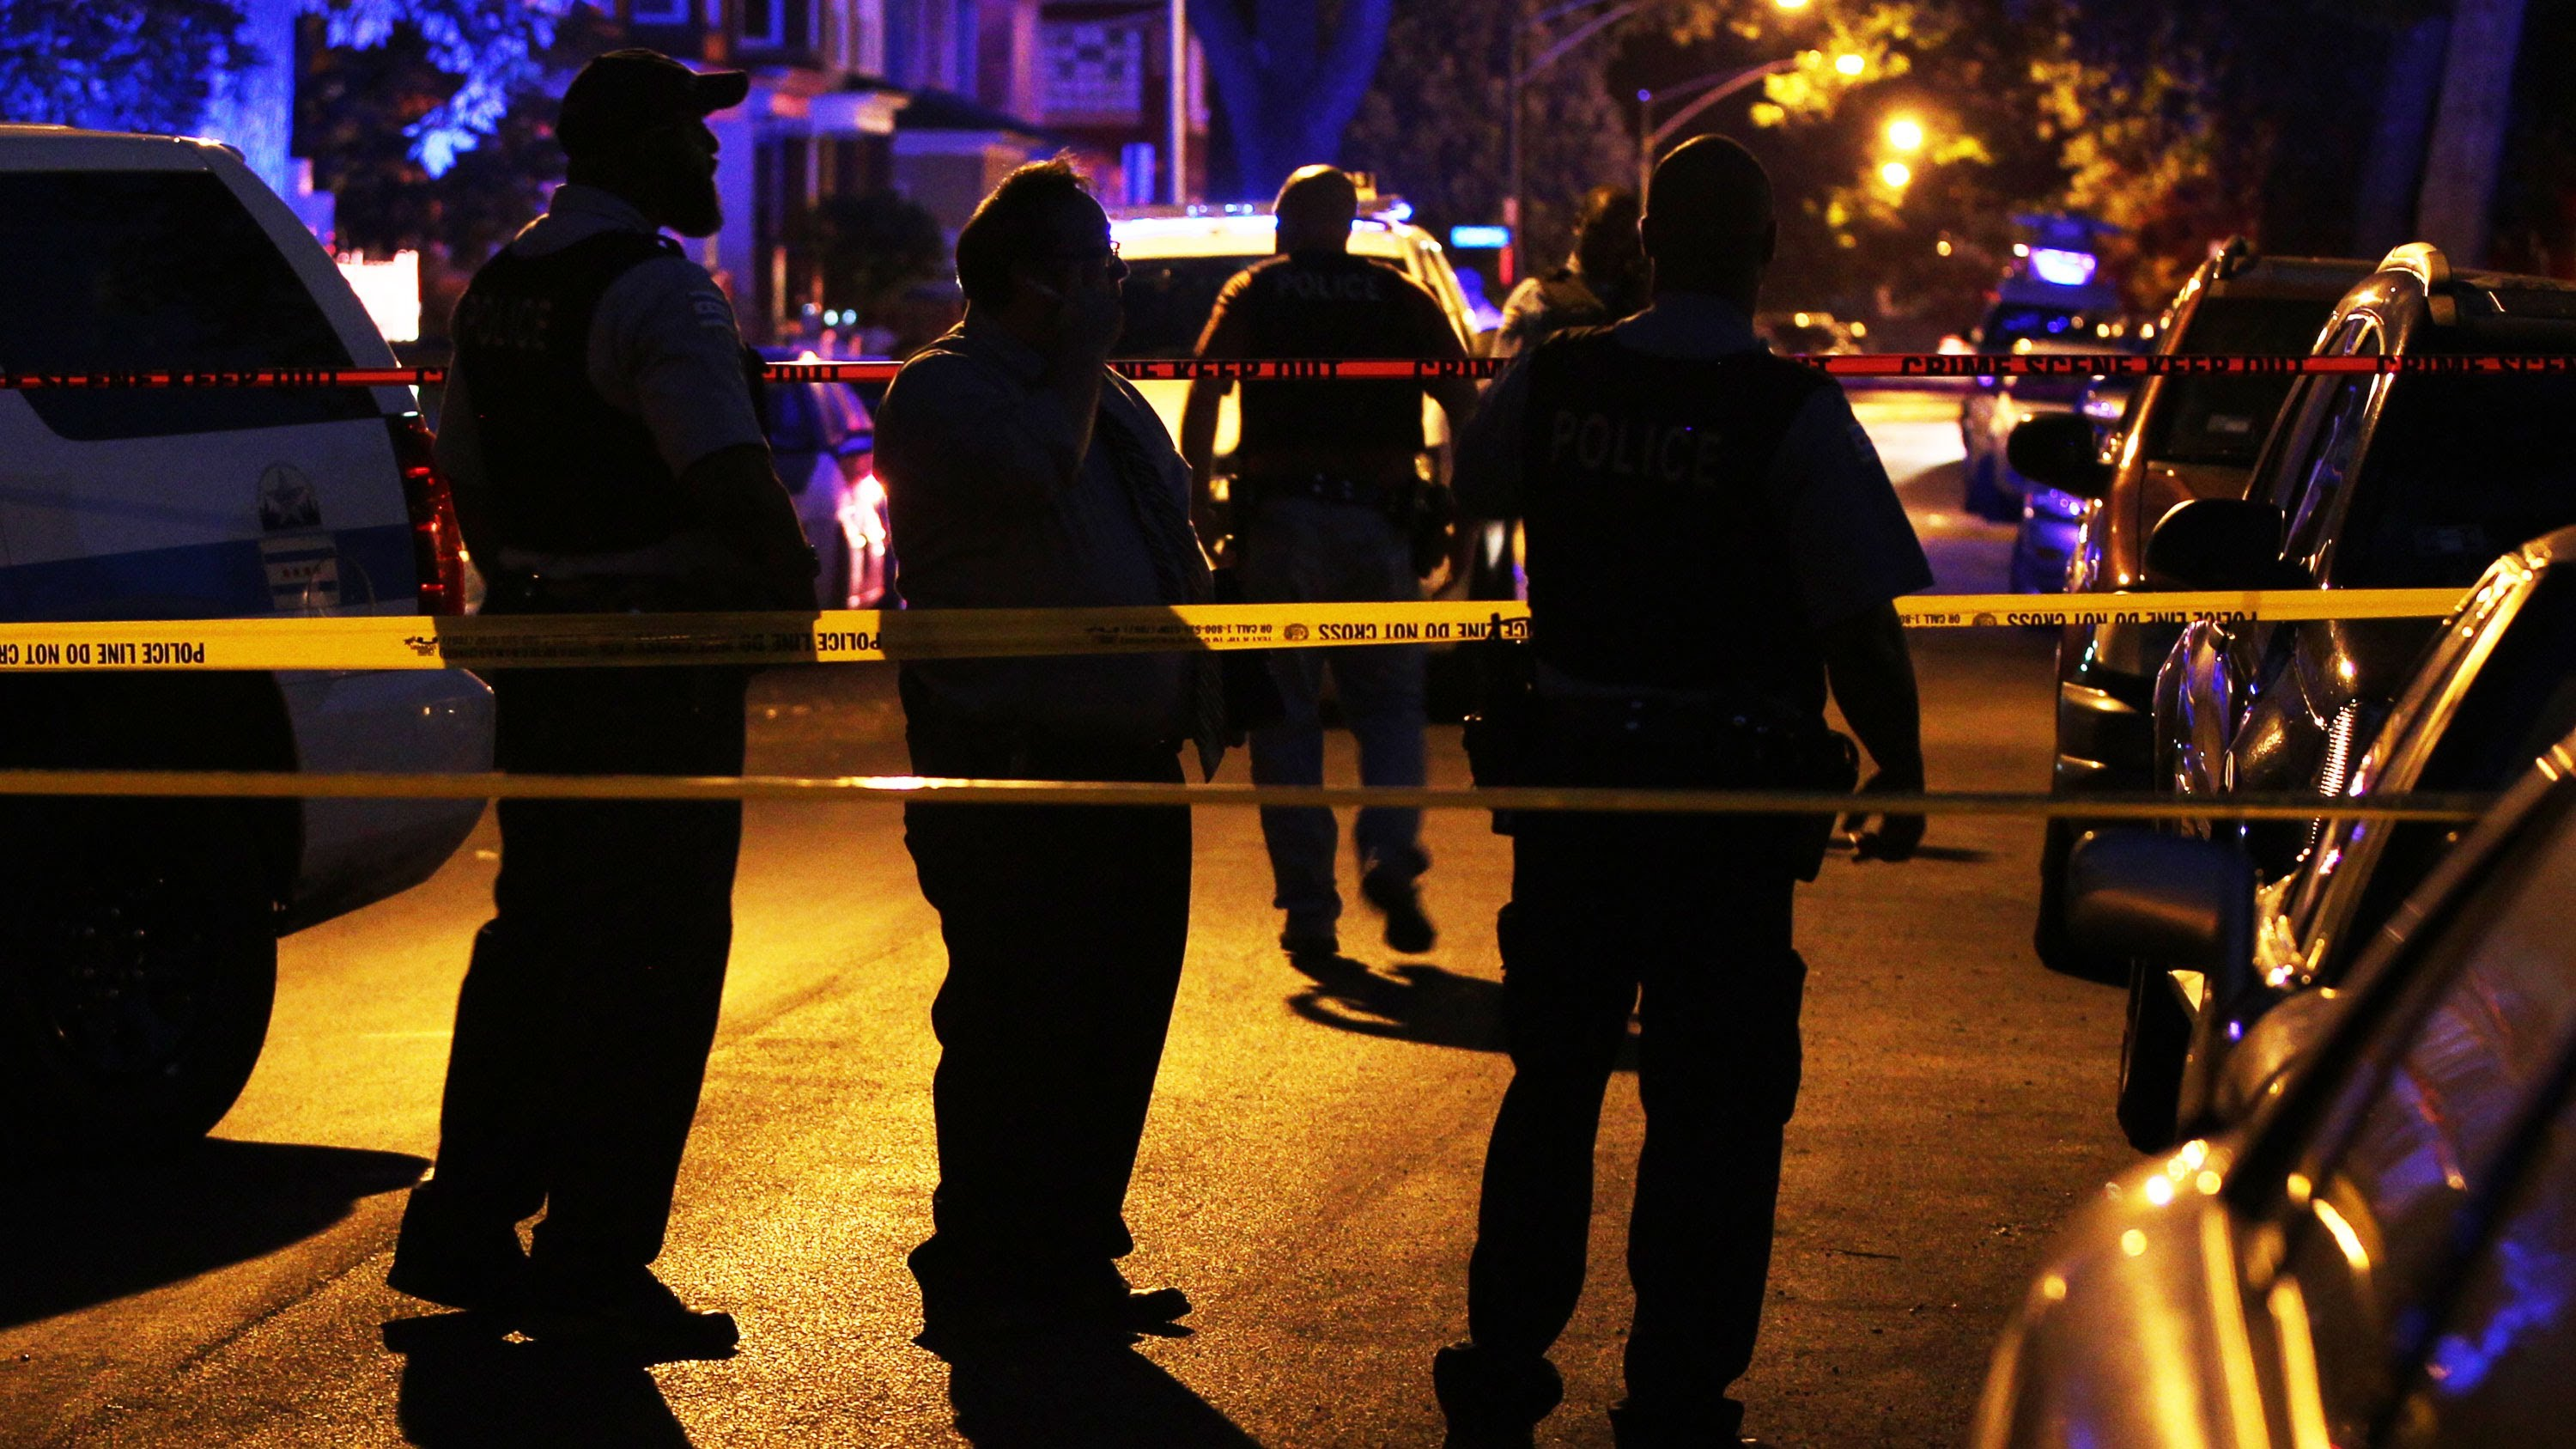 63 shot over weekend in Chicago; only long July 4th weekend more violent this year Featured